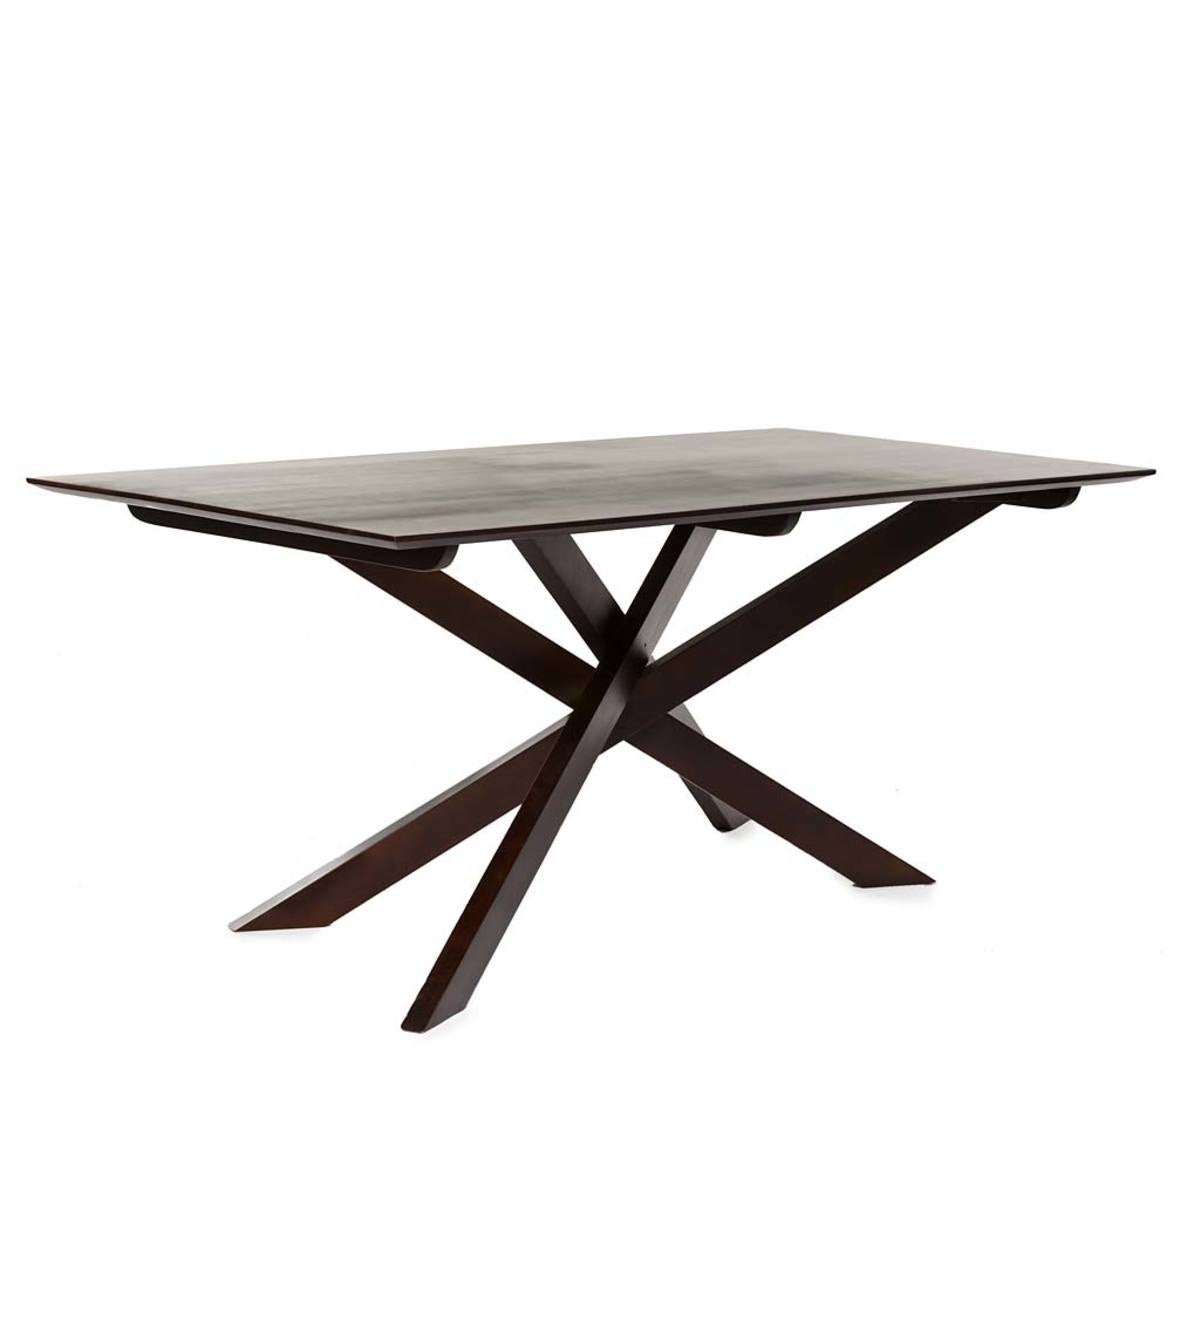 The James Multi Beam Dining Table